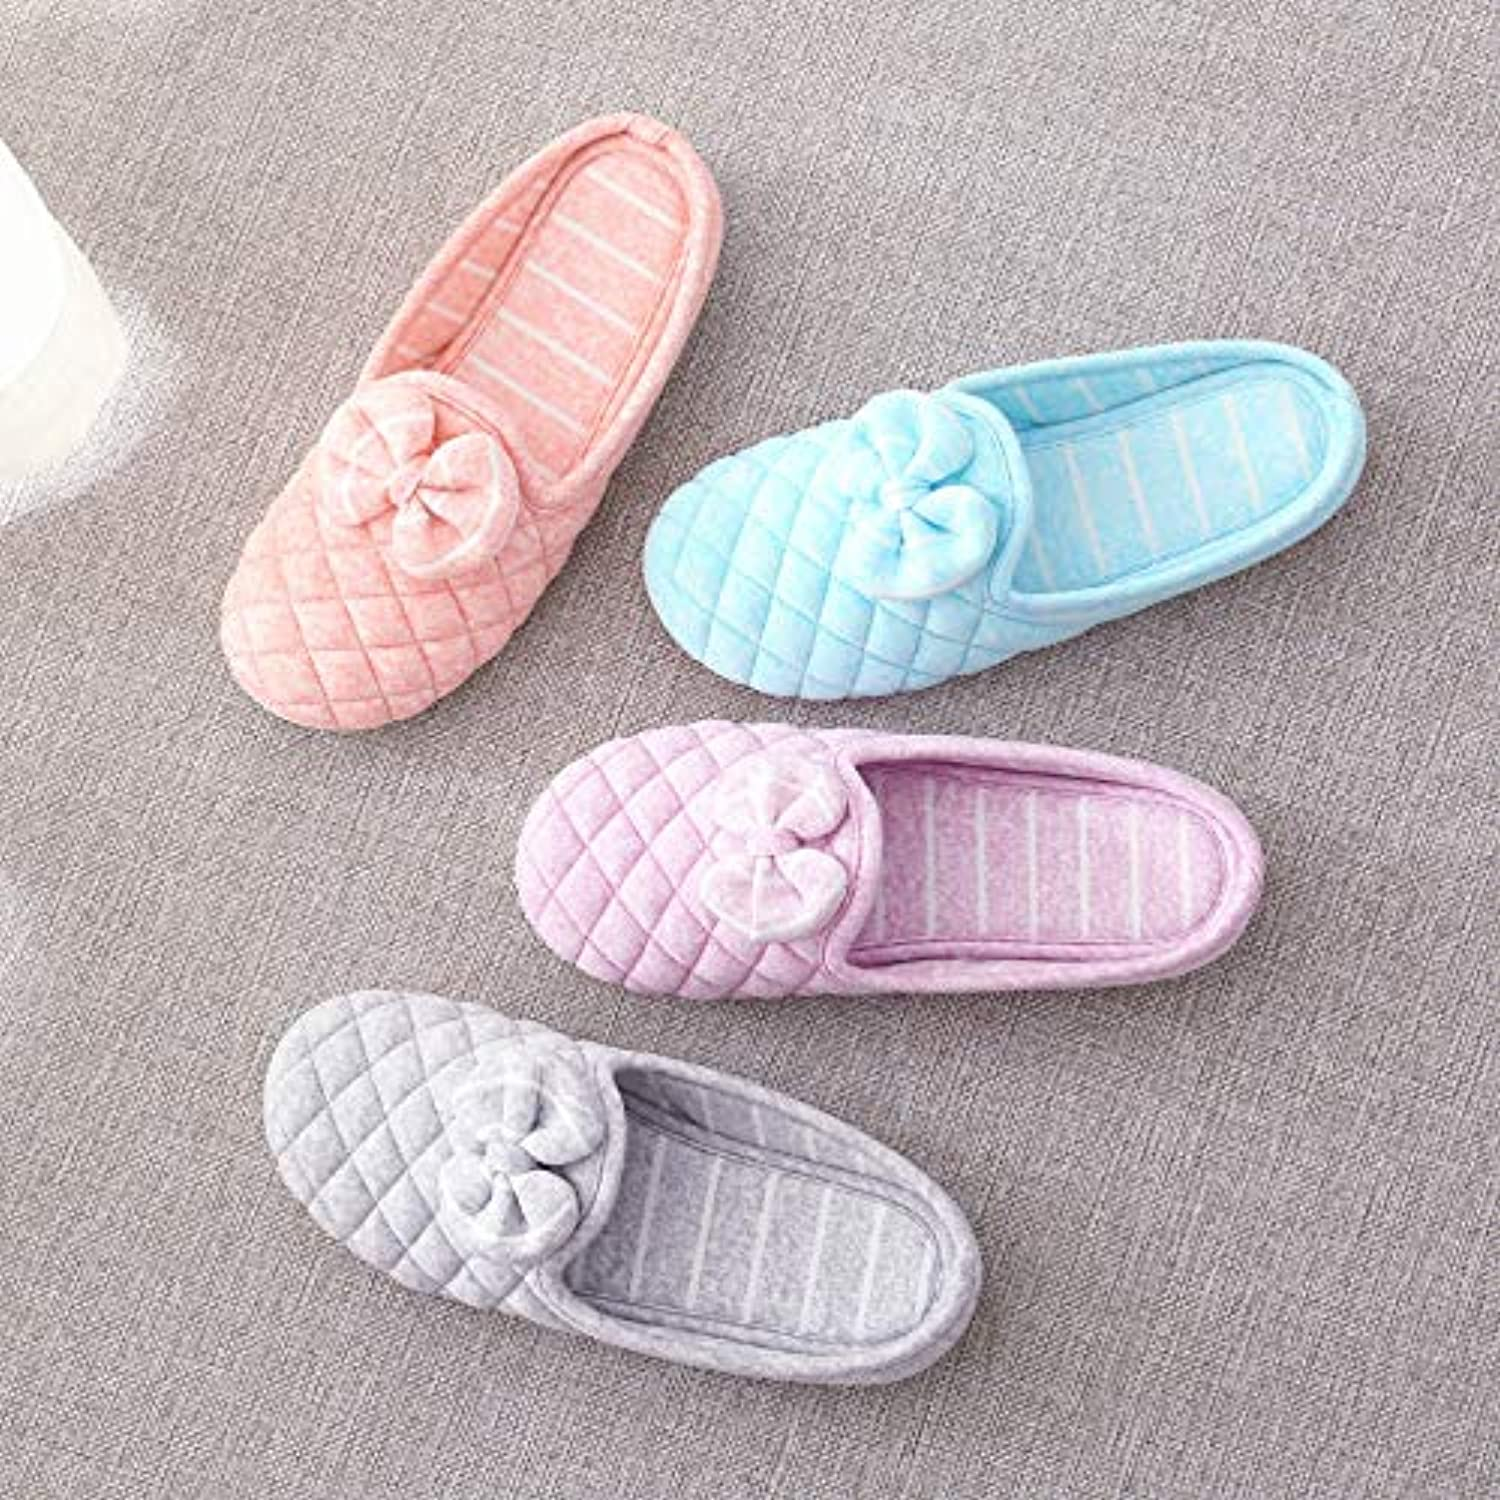 IANXI Home Summer Thin Half-Pack with Maternal Slippers Indoor Spring and Autumn Breathable Non-Slip Cotton Slippers (color   bluee, Size   2)